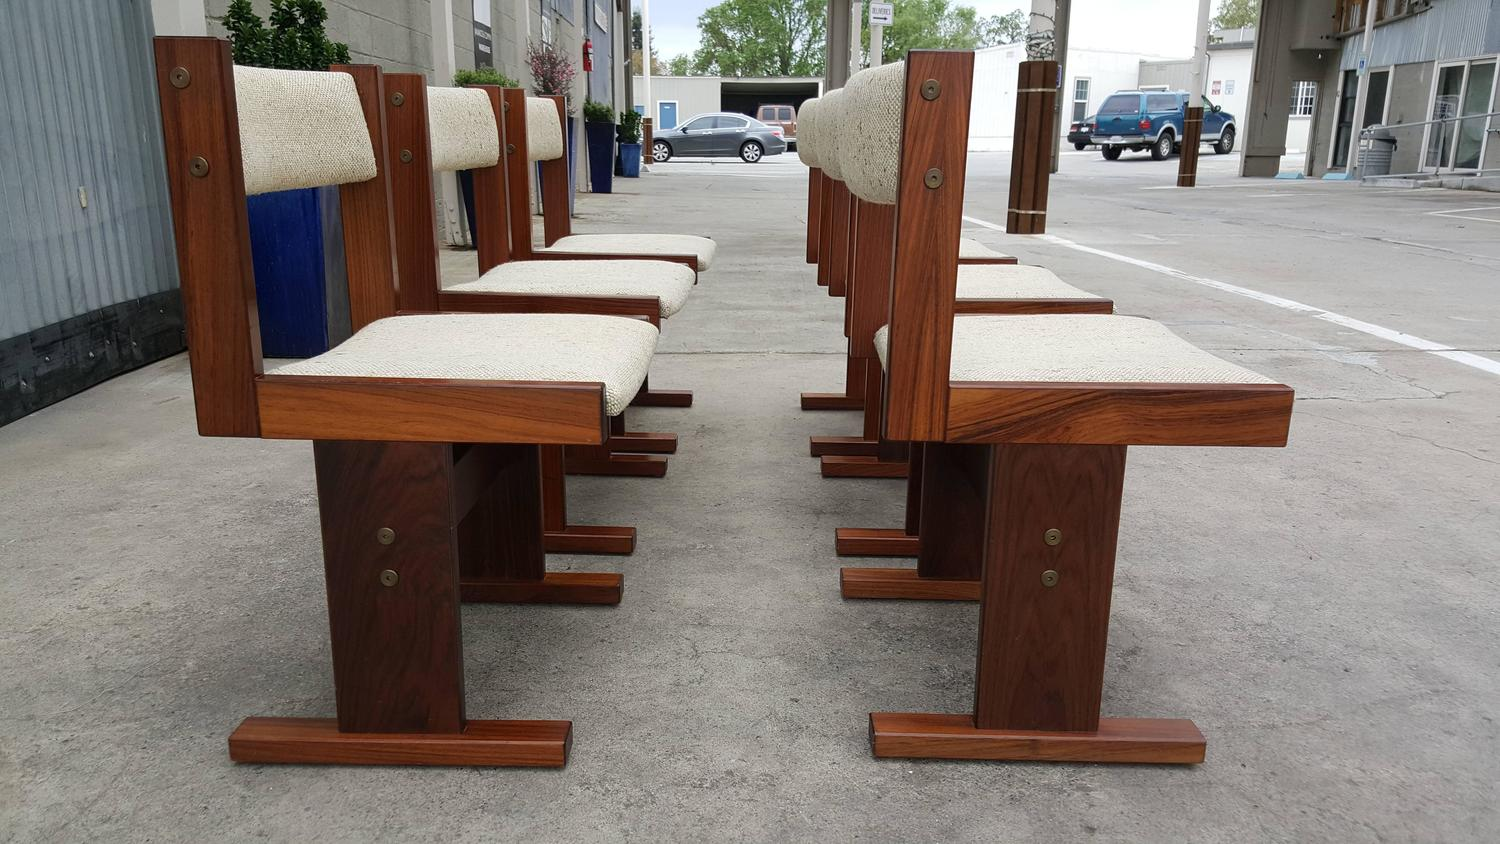 Set of Six Rosewood Danish Modern Dining Chairs by Gangso Mobler For Sale at 1stdibs